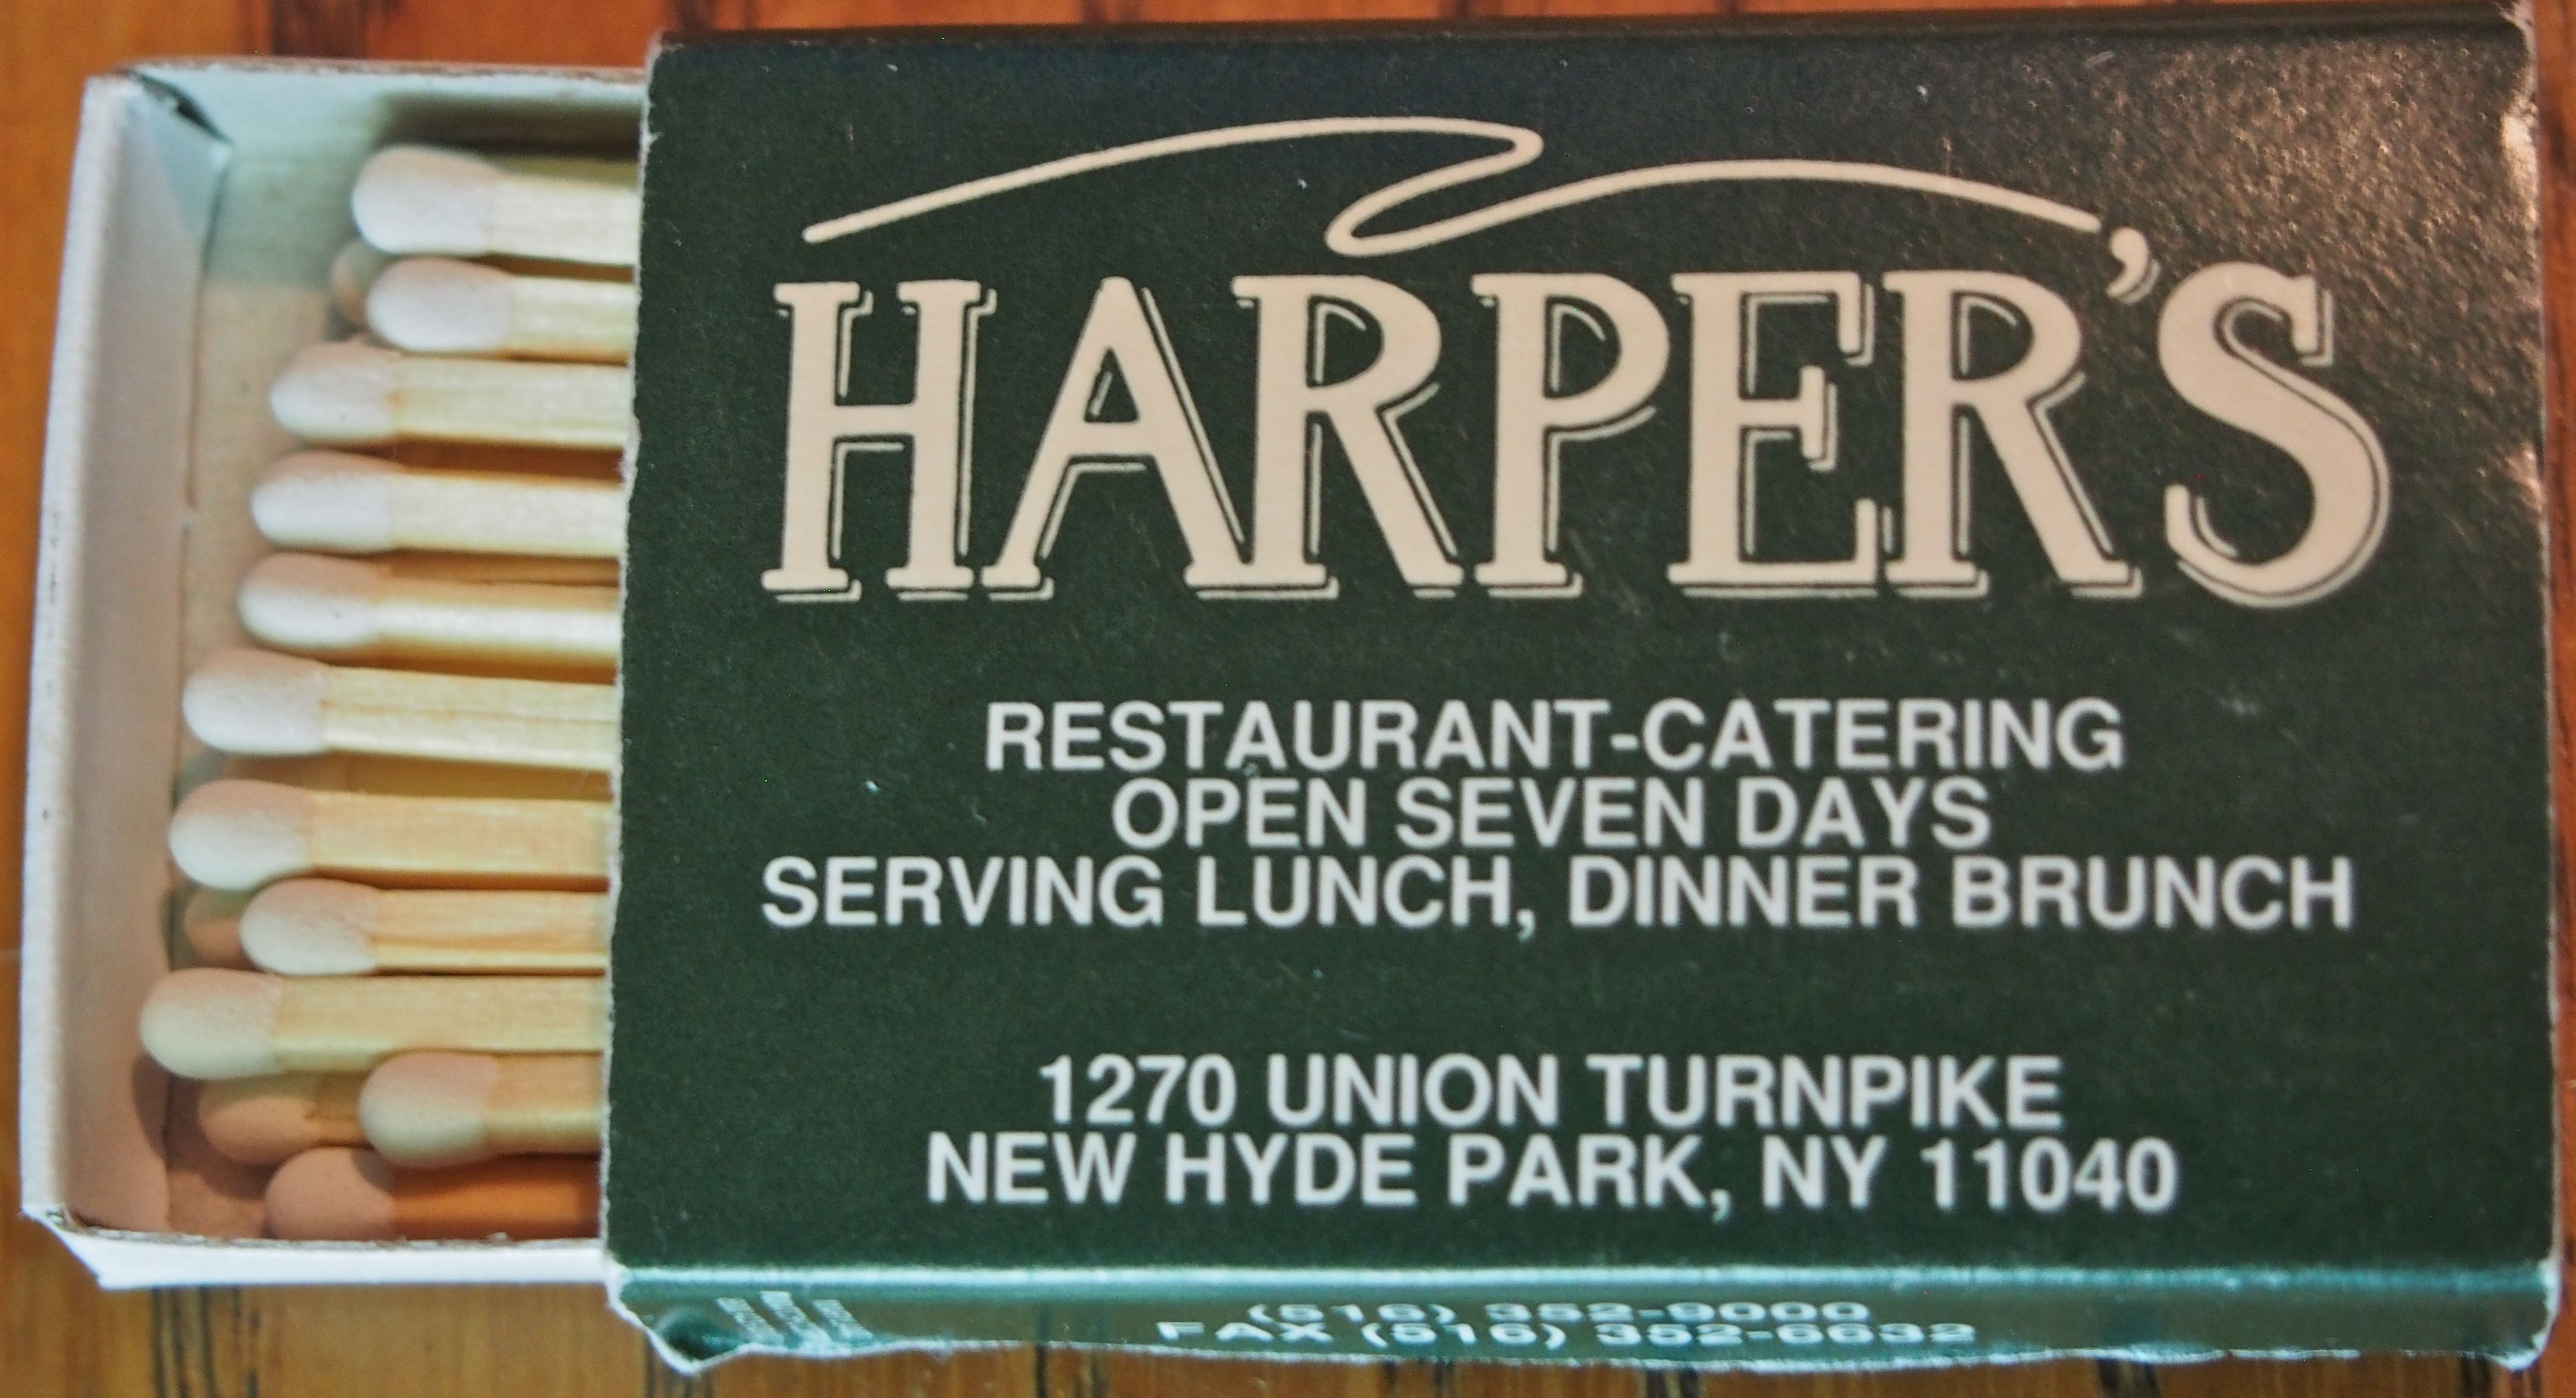 Harper's Restaurant - New Hyde Park, NY #matchbox To order your business' own branded #matchboxes call TheMatchGroup @ 800.605.7331 or go to www.GetMatches.com today!